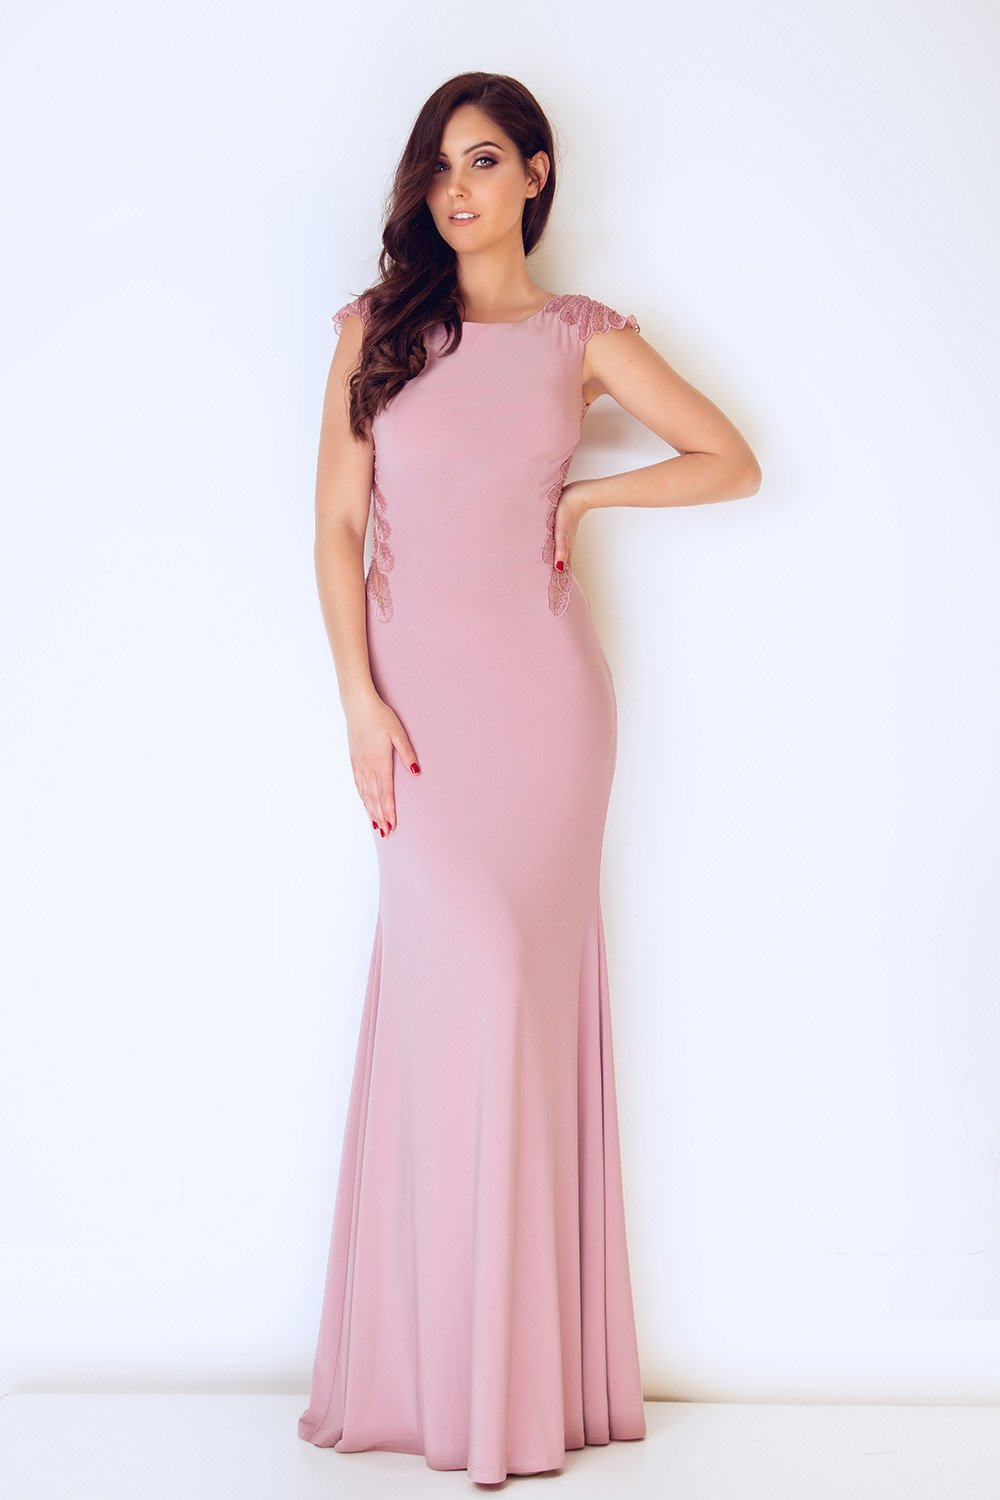 Misae Peony Pink Long Dress - Gissings Boutique